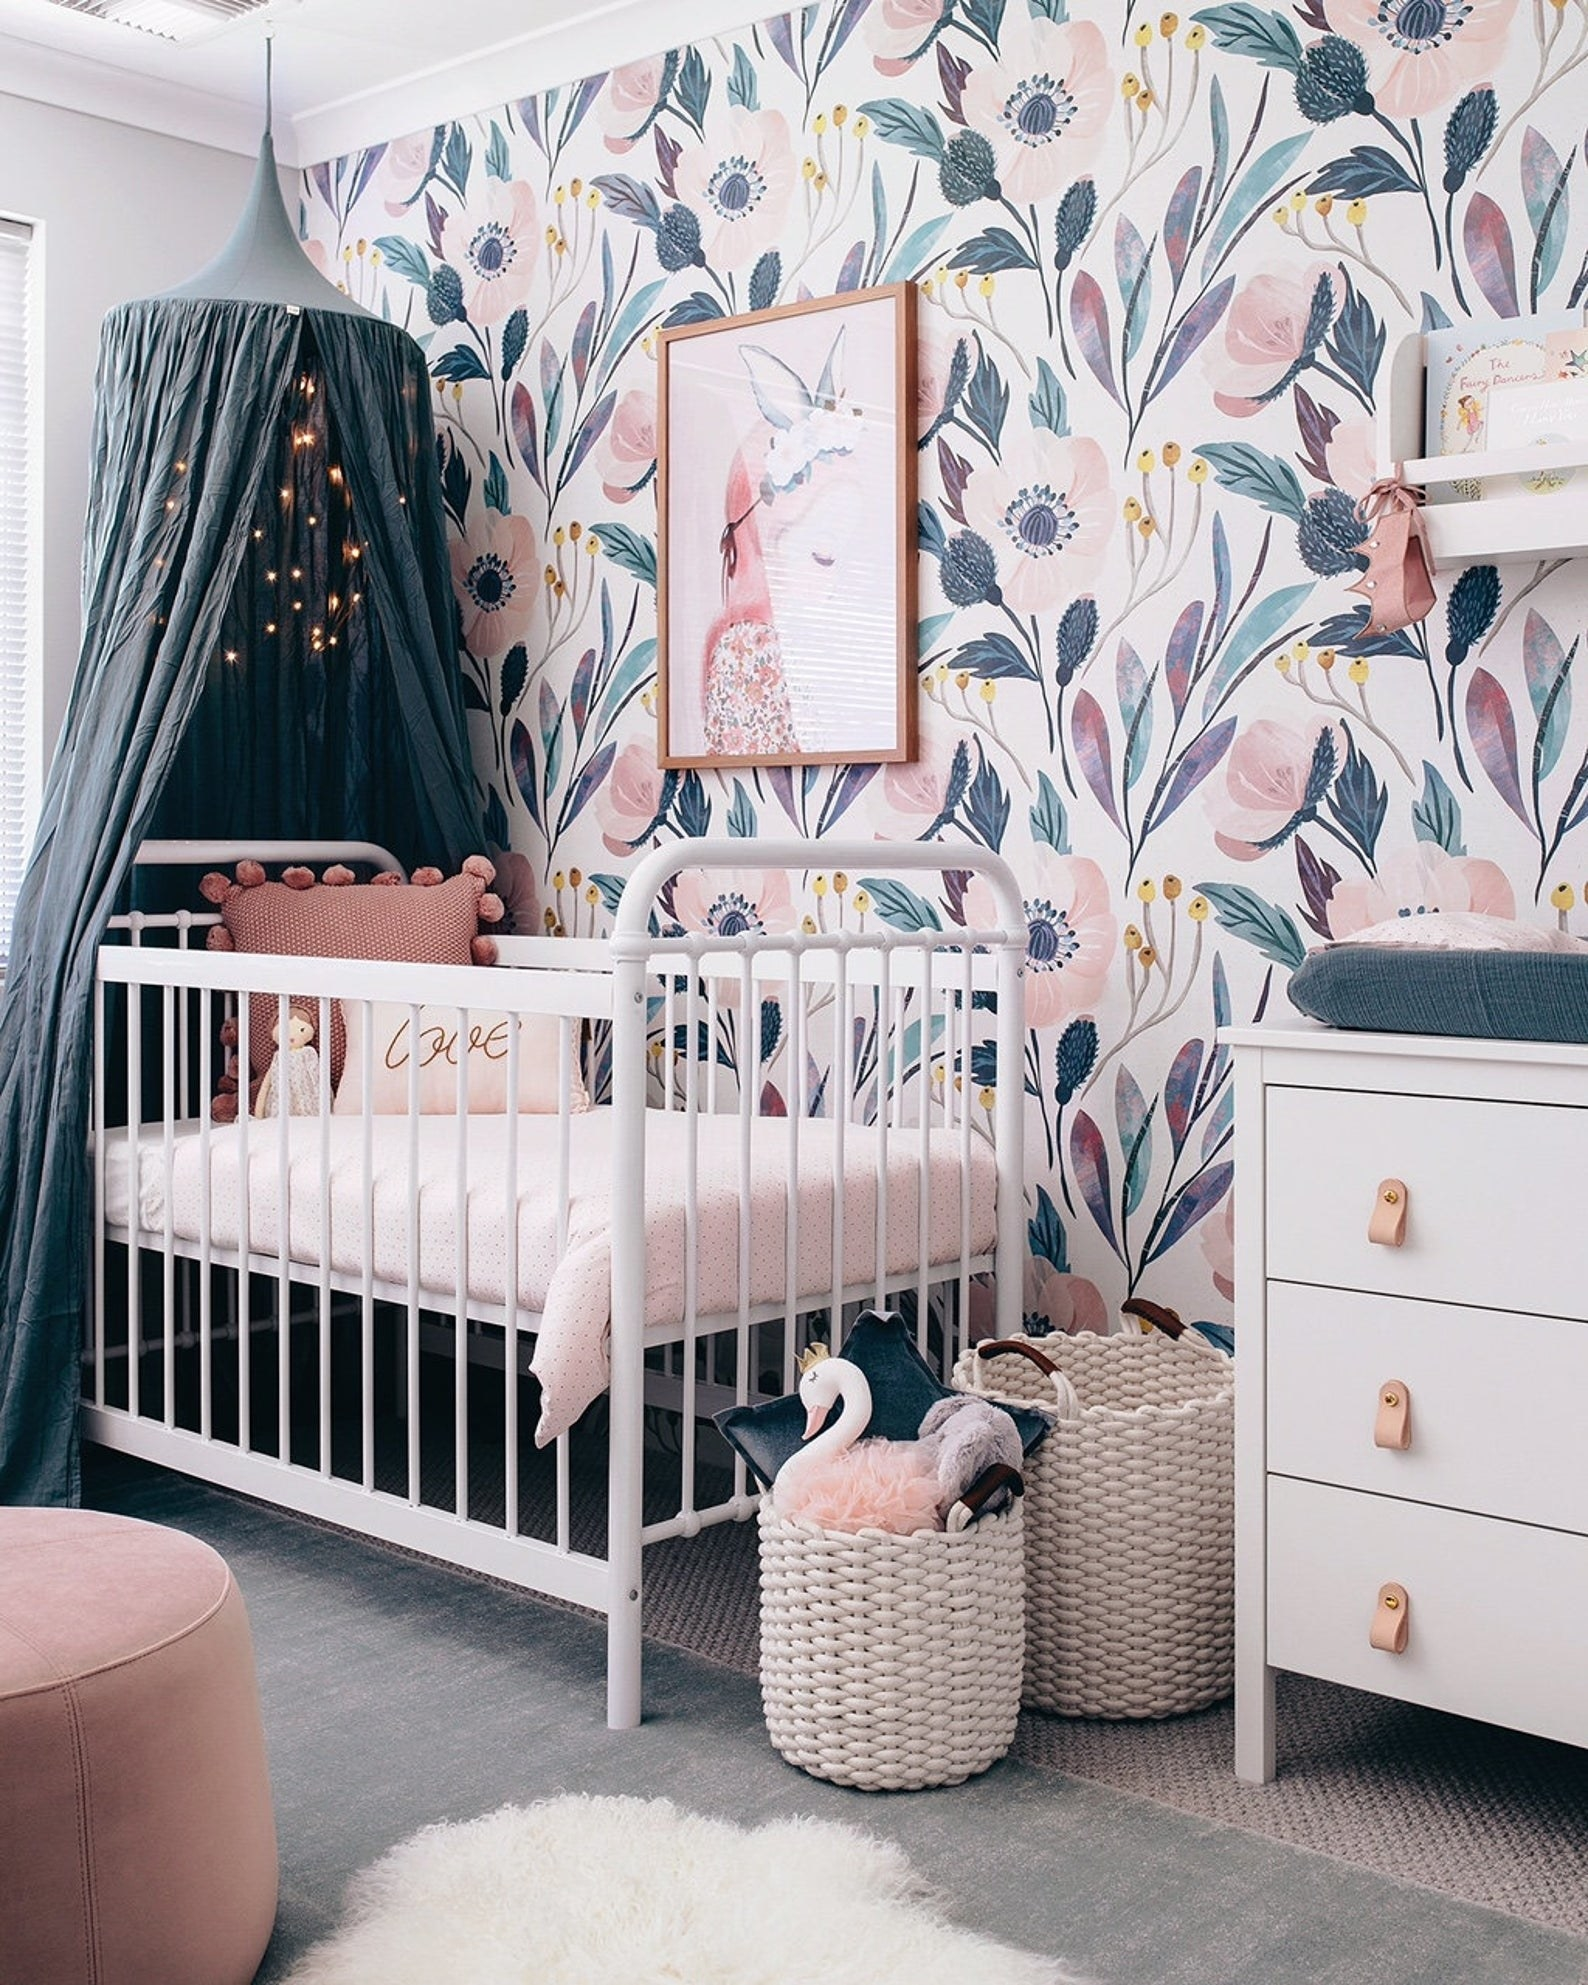 a bedroom with the floral wallpaper